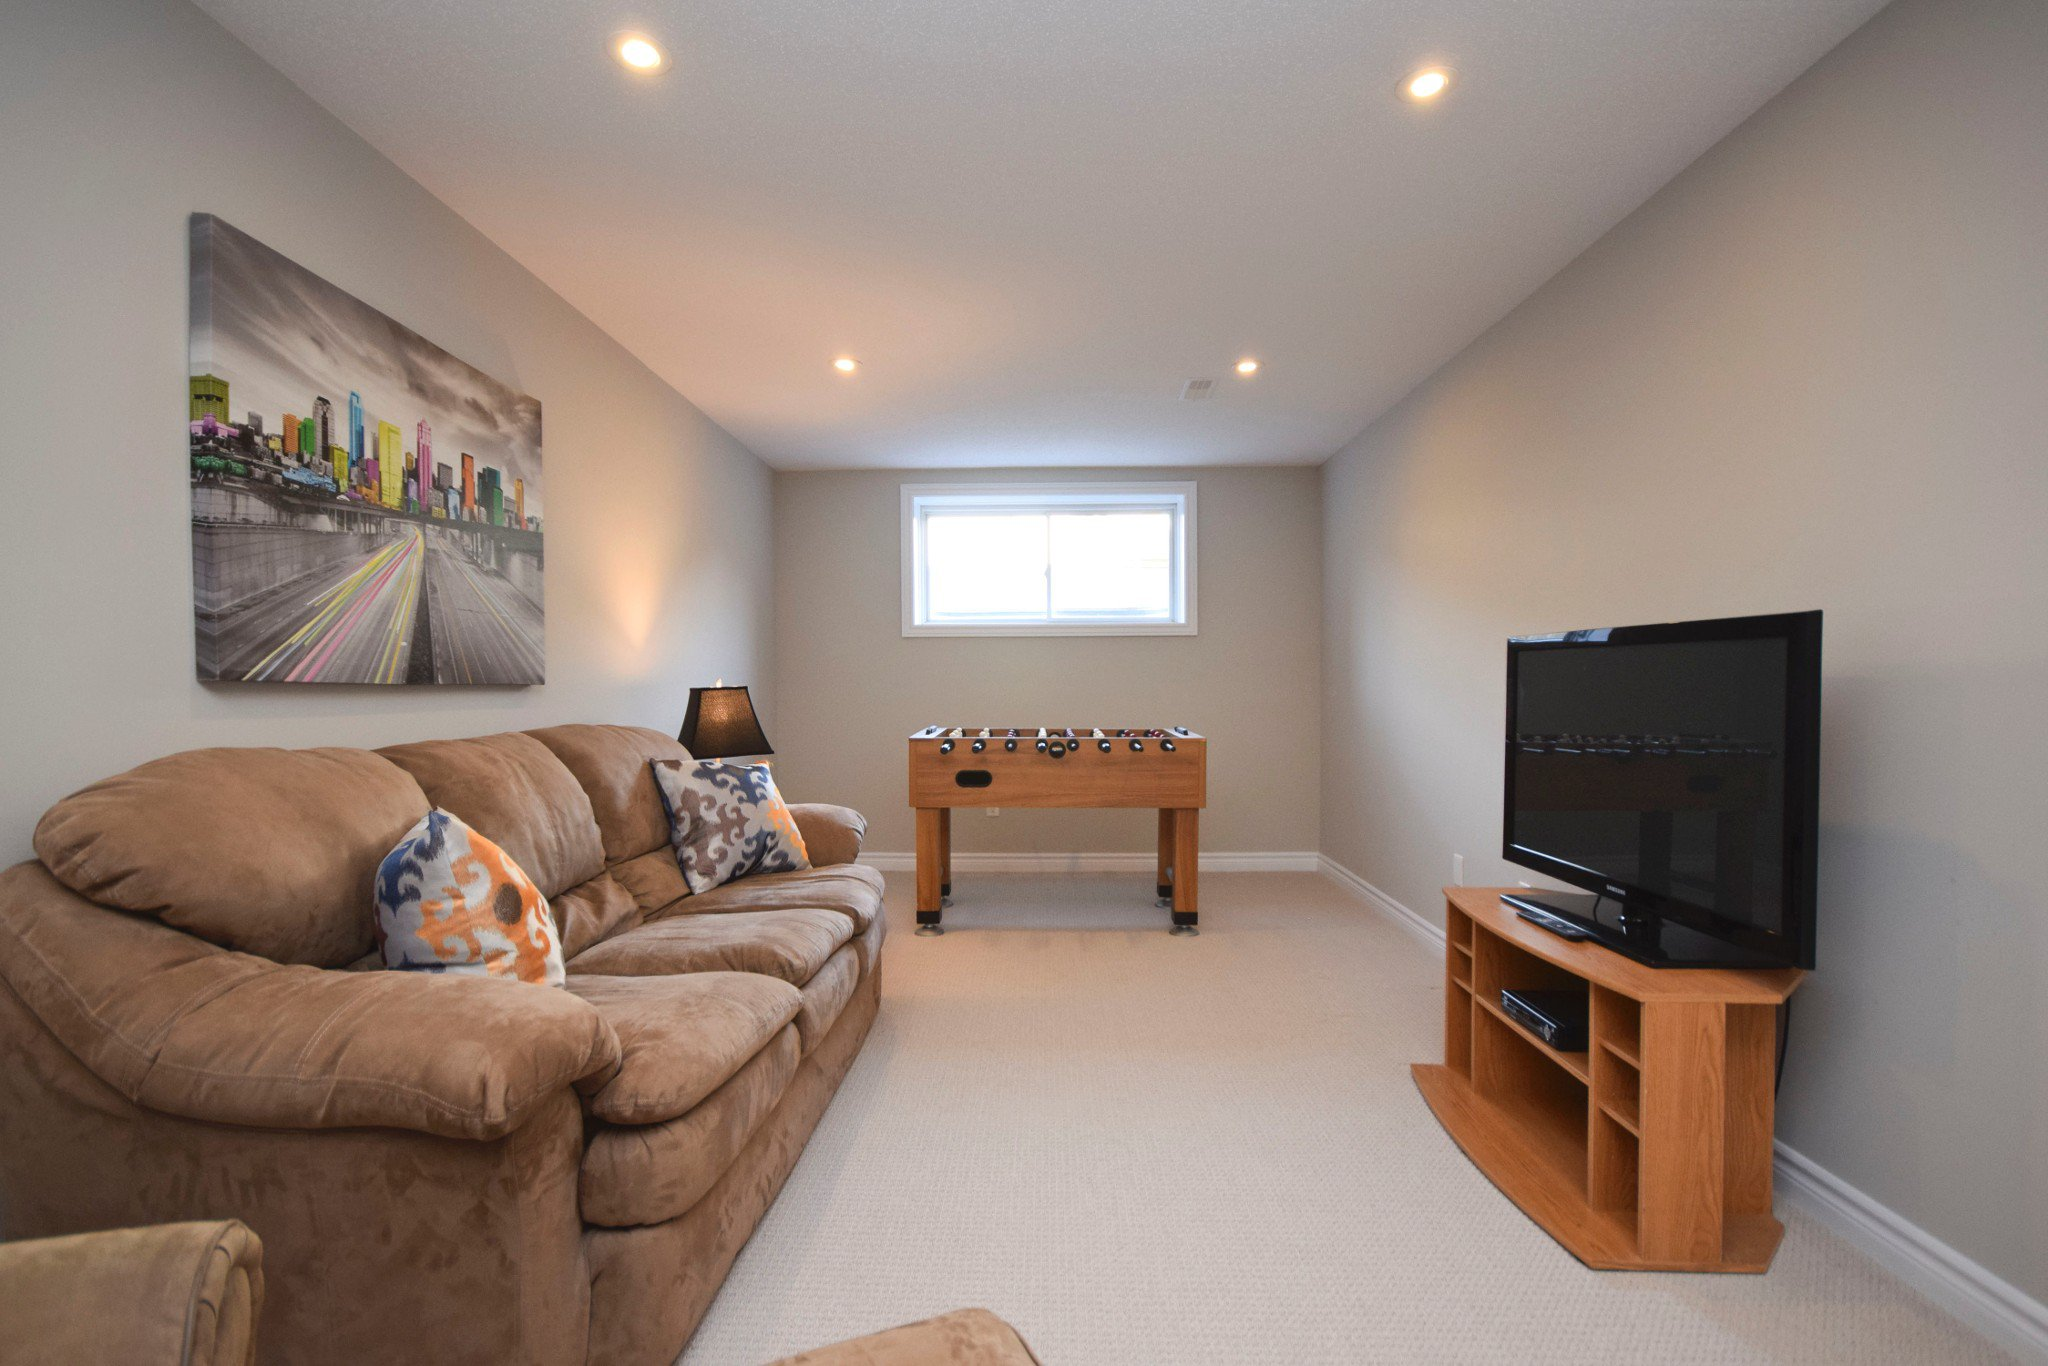 Photo 57: Photos: 131 Popplewell Crescent in Ottawa: Cedargrove / Fraserdale House for sale (Barrhaven)  : MLS®# 1130335